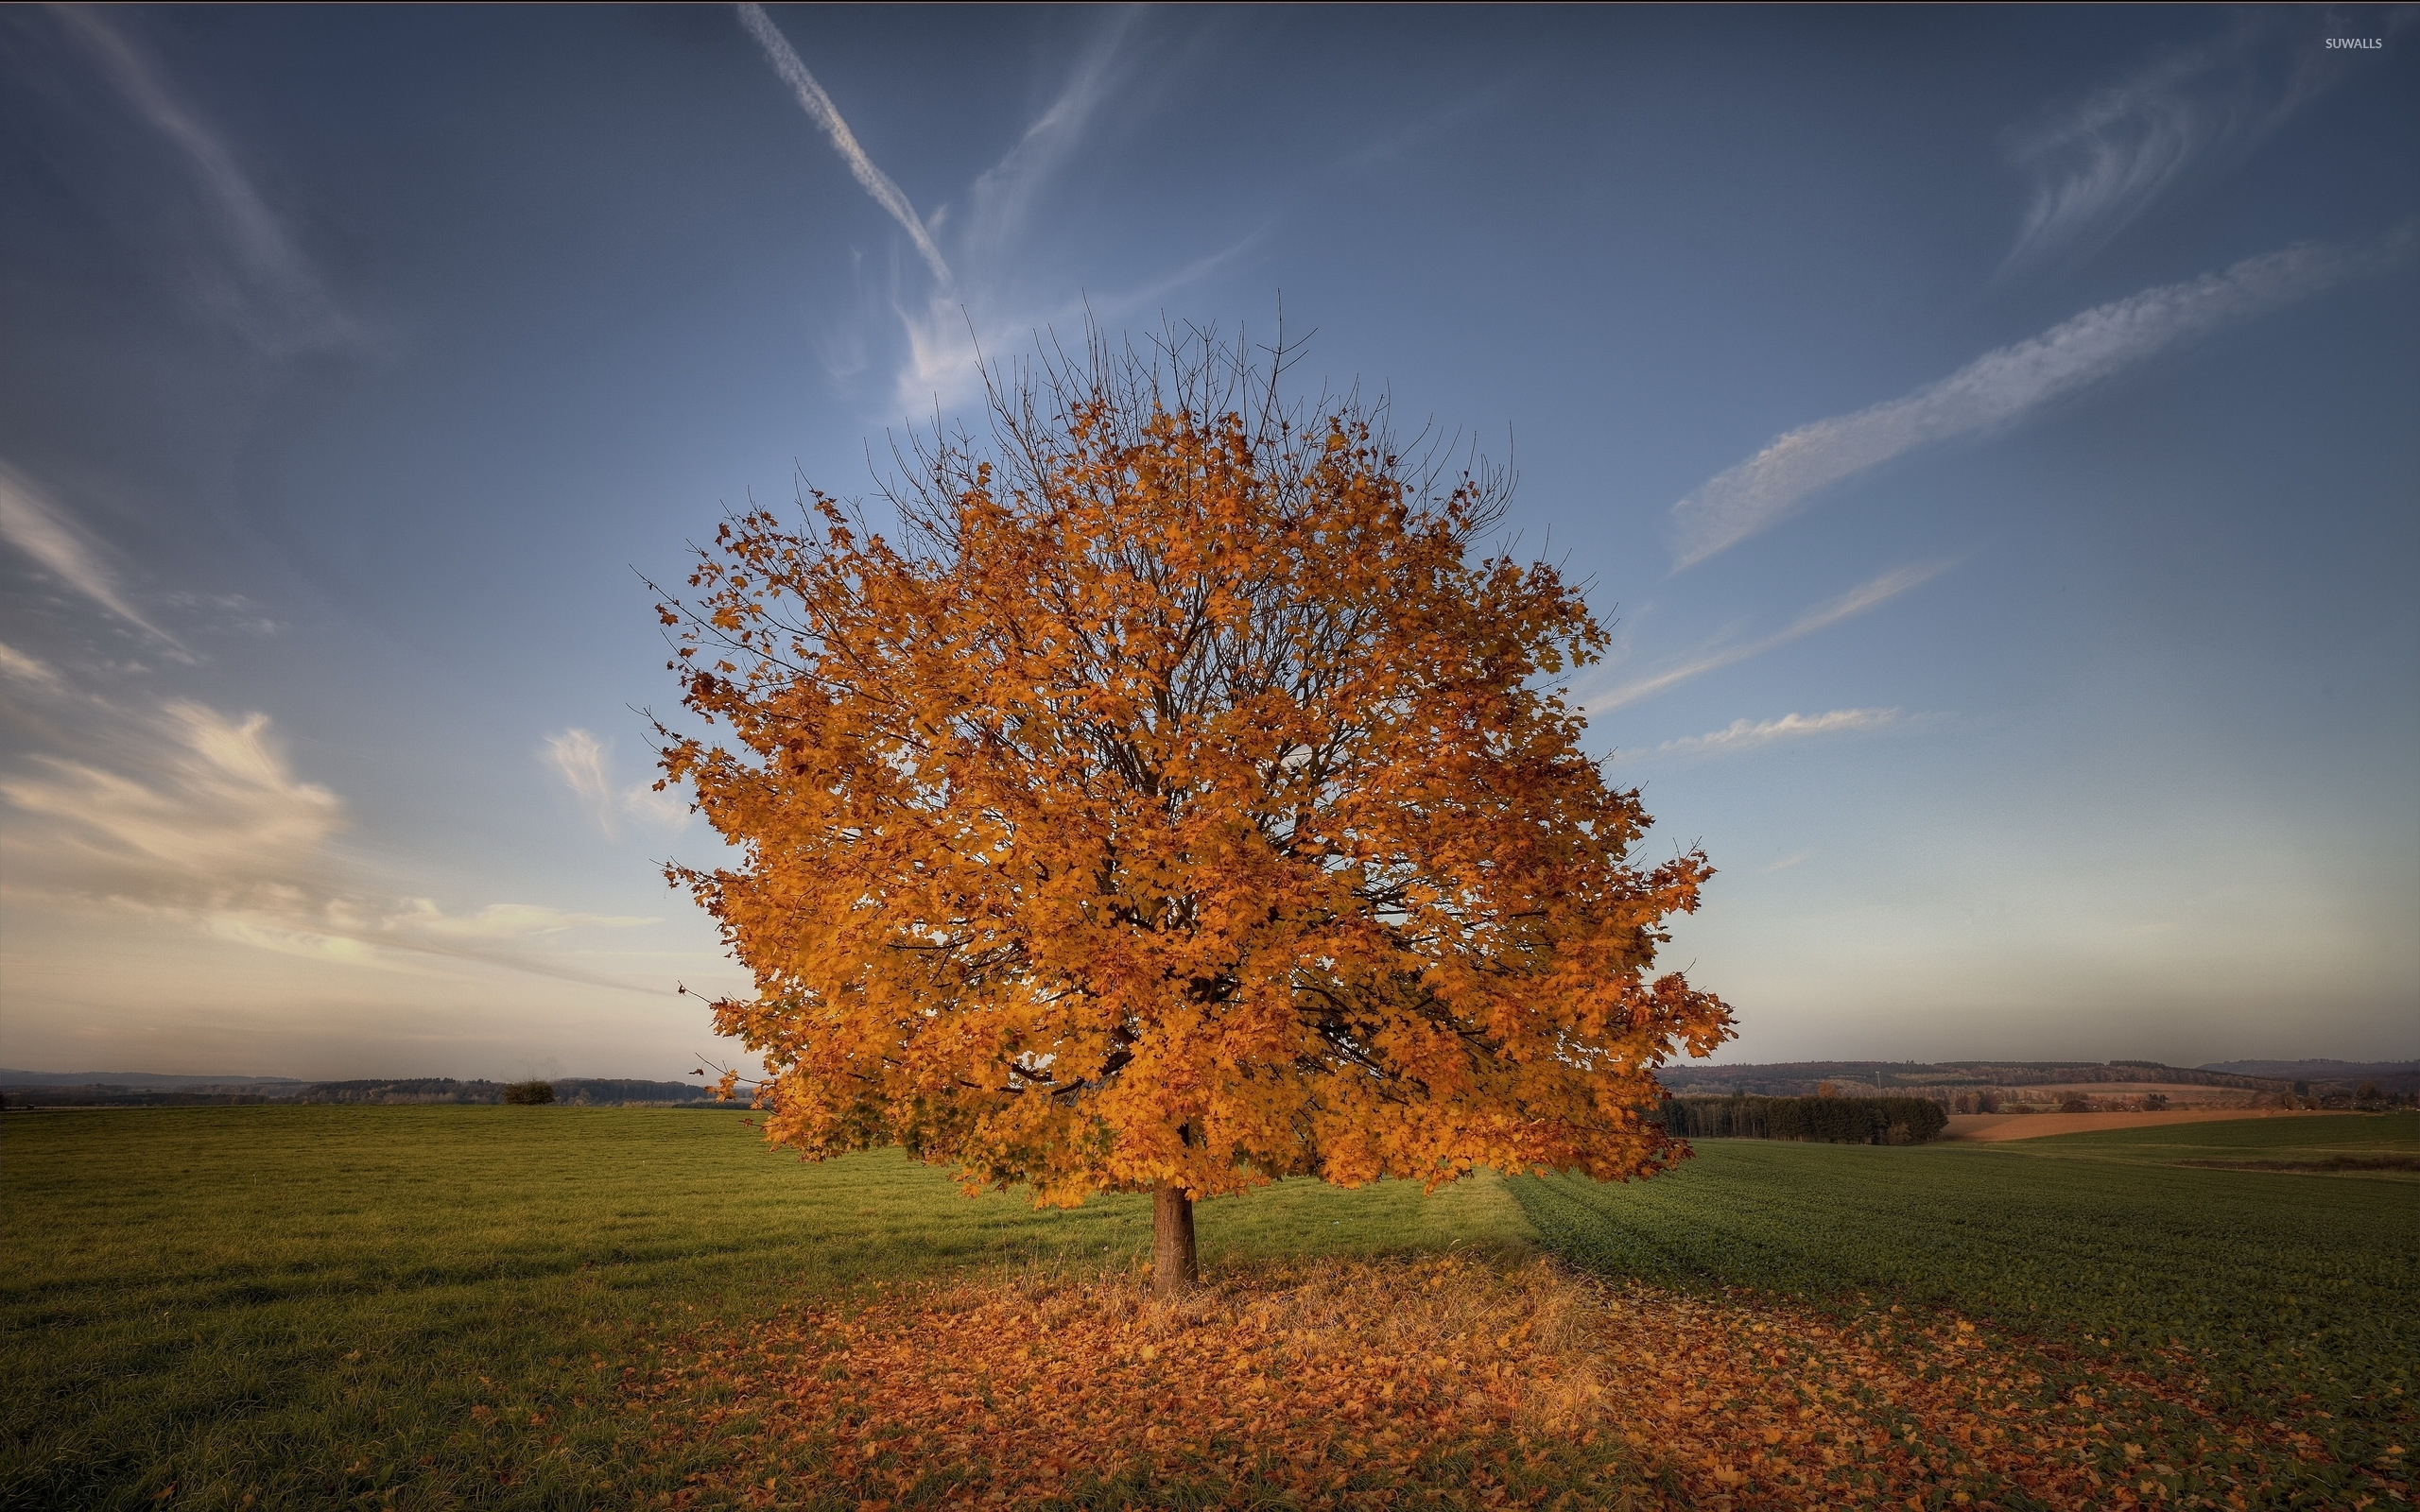 2560x1600 hd wallpapers lonesome autumn tree losing its leaves on the field wallpaper 2560x1600 jpg voltagebd Choice Image